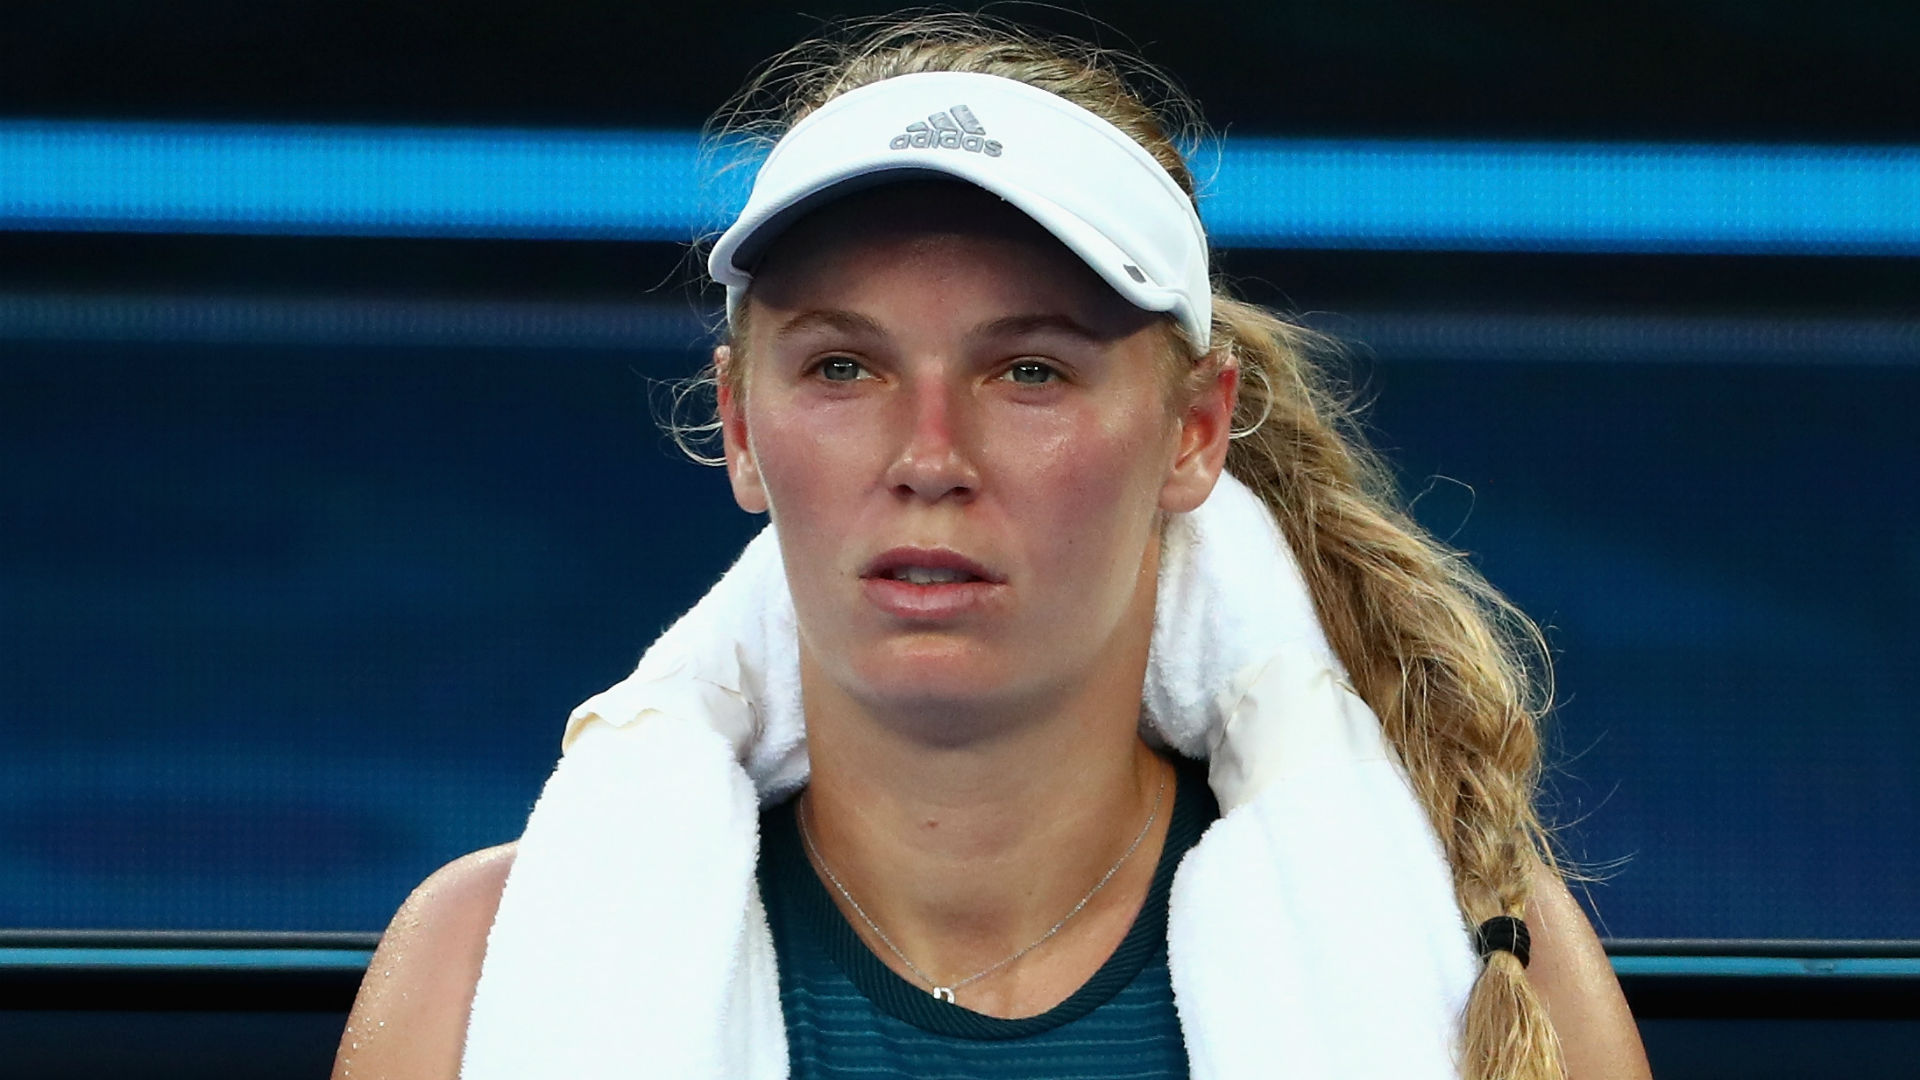 Caroline Wozniacki pulled out of the Qatar Open due to illness on a day in which she was due to face Karolina Muchova in the first round.